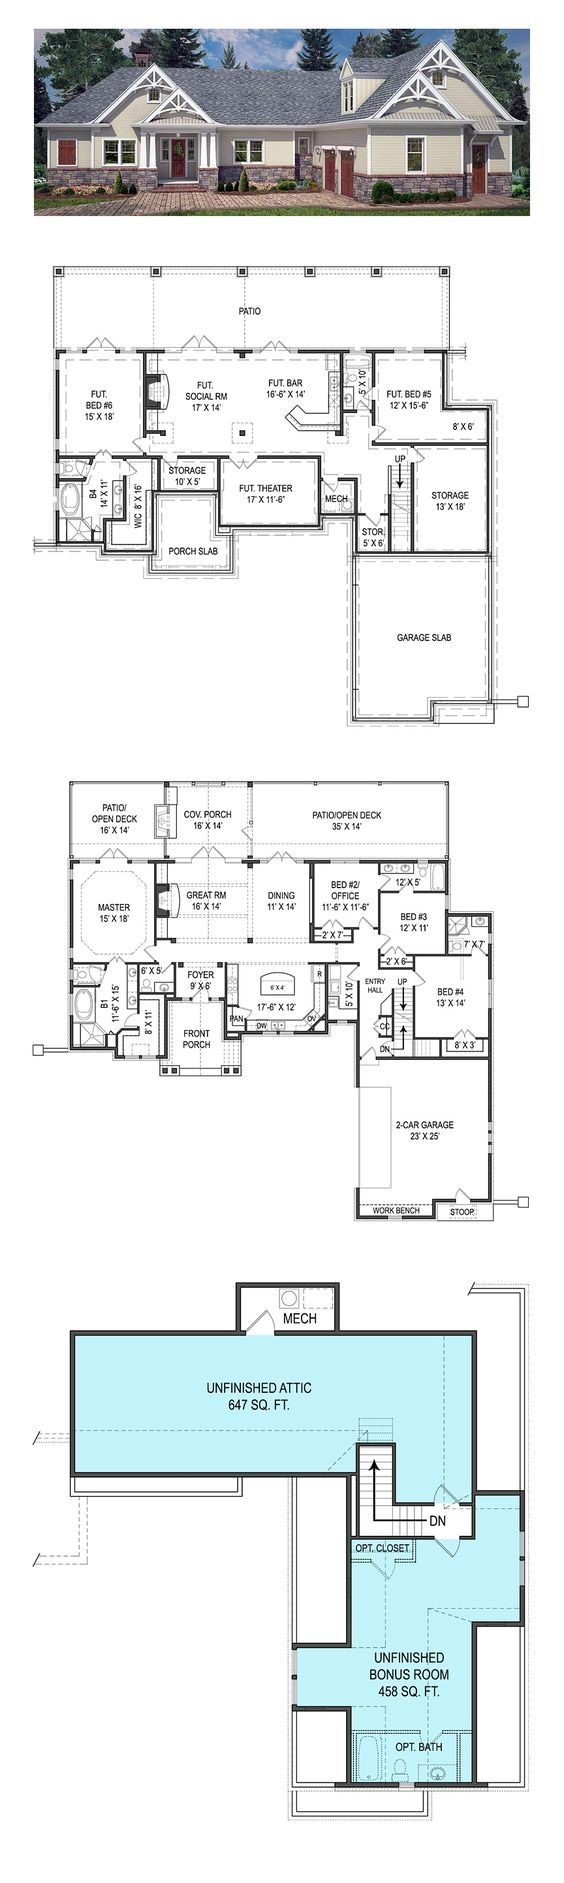 Traditional Style House Plan 72220 With 4 Bed 4 Bath 2 Car Garage Retirement House Plans House Plans House Layouts